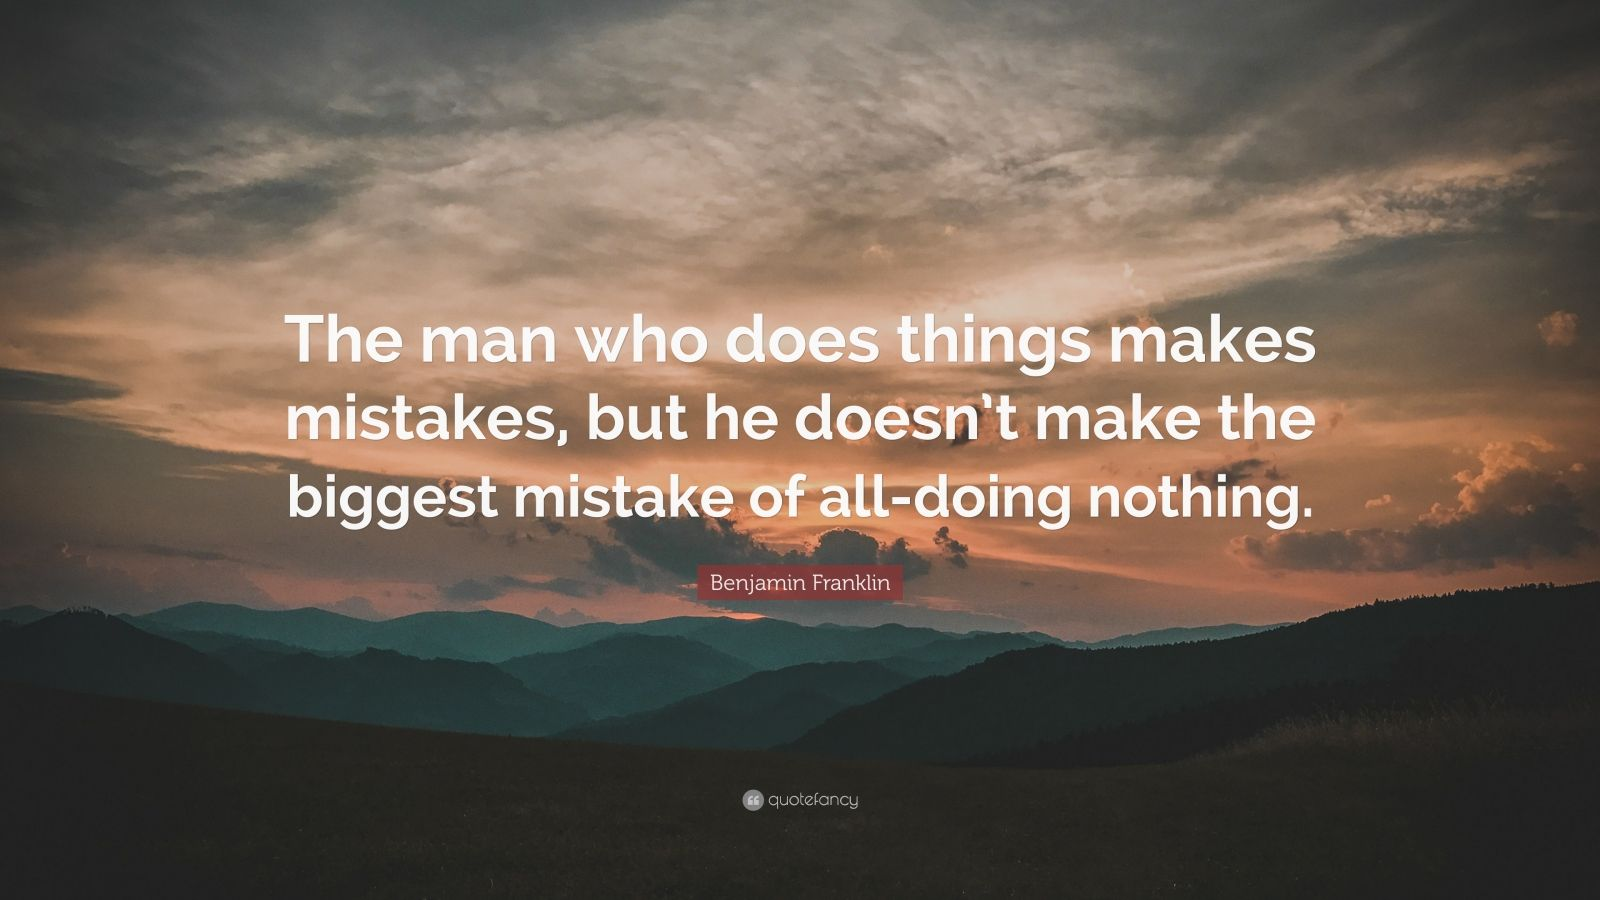 """Benjamin Franklin Quote: """"The man who does things makes mistakes, but he doesn't make the biggest mistake of all-doing nothing."""""""